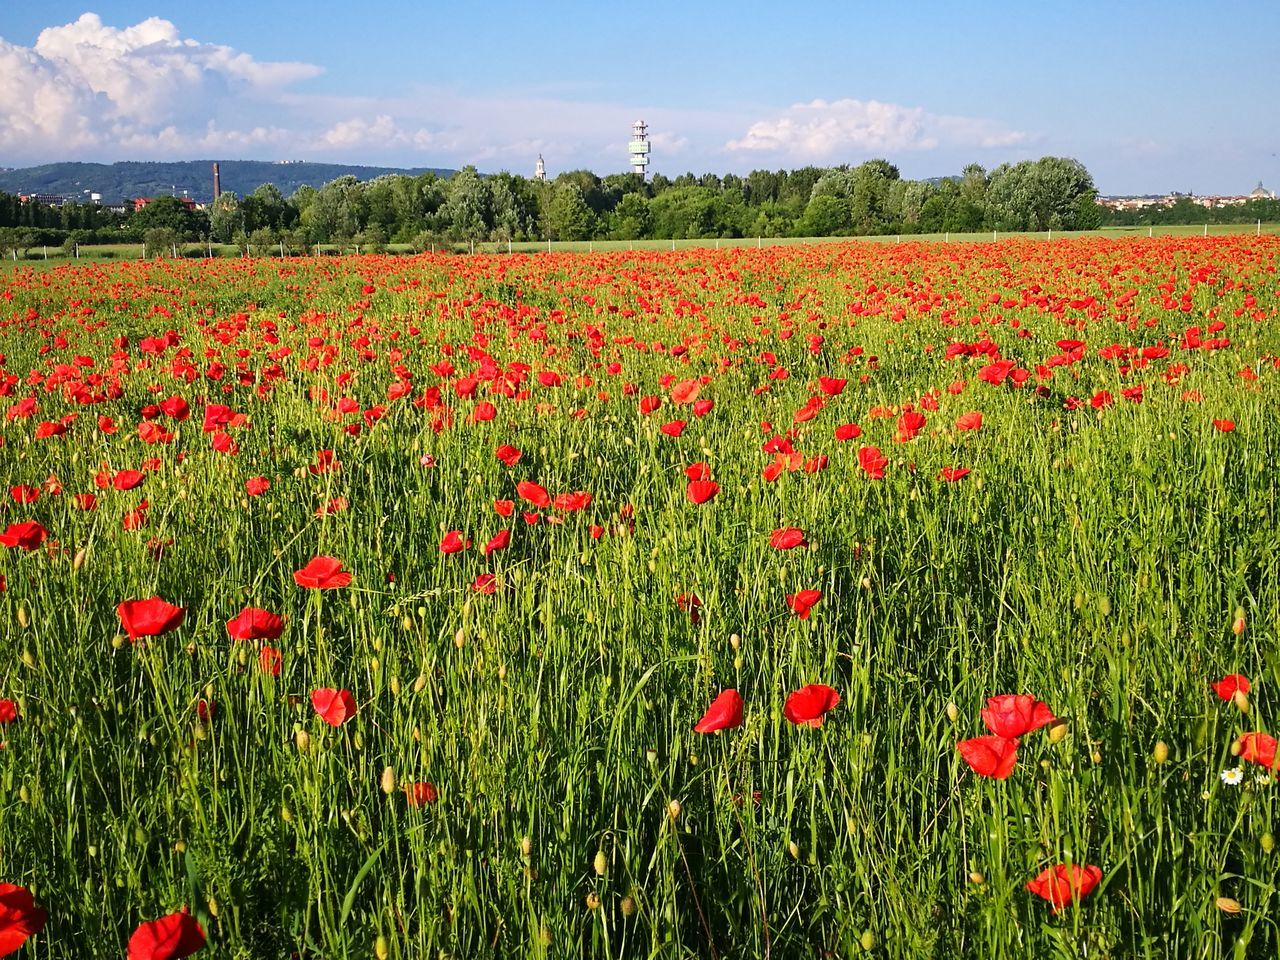 flower, growth, beauty in nature, nature, field, poppy, plant, red, freshness, day, fragility, rural scene, tranquility, agriculture, no people, outdoors, tranquil scene, sky, scenics, landscape, flowerbed, petal, blooming, flower head, abundance, summer, green color, cloud - sky, springtime, close-up